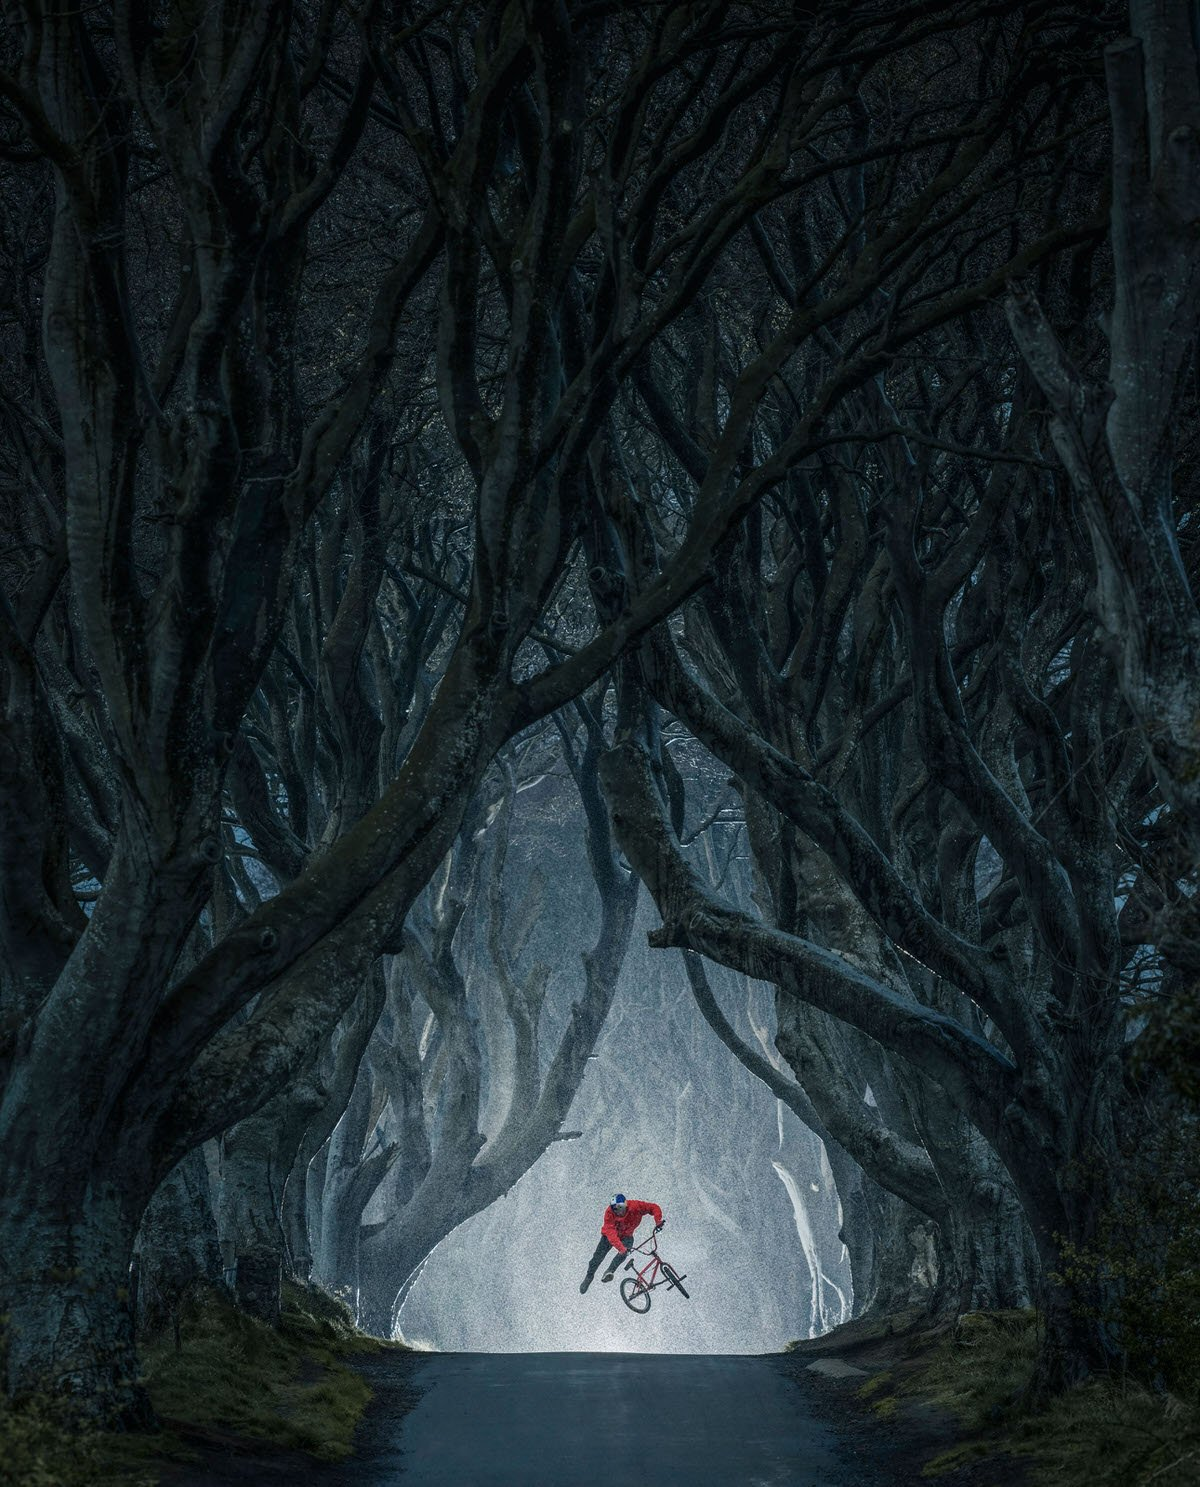 Mastepiece by EyeEm: Lorenz Holder, Germany, for his shot of Senad Grosic flying in the magical Game of Thrones location, The Dark Hedges, Northern Ireland.